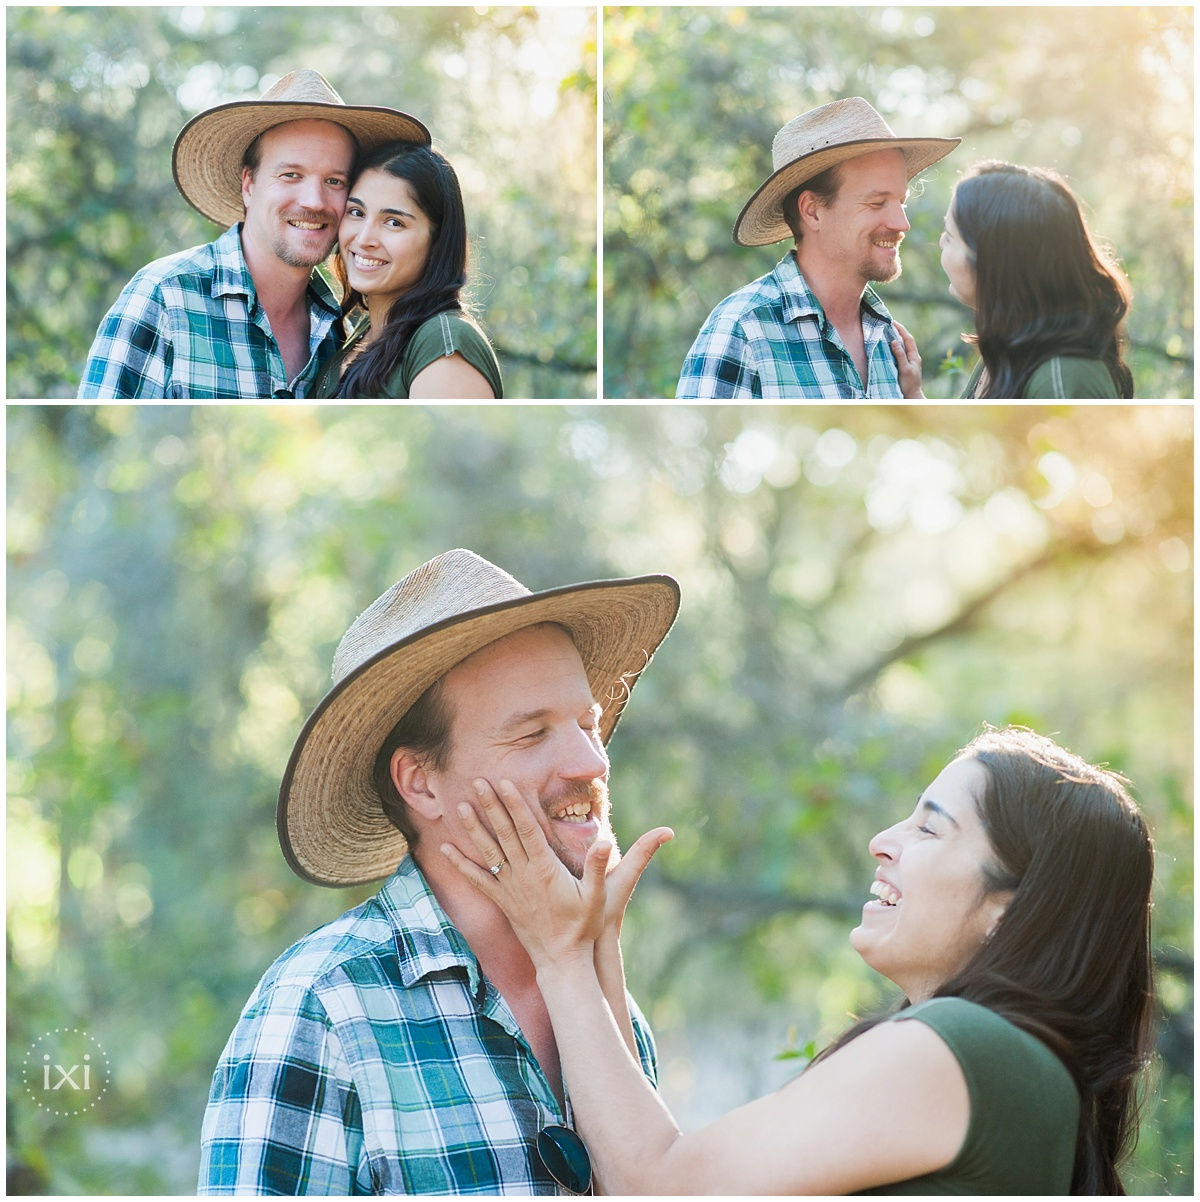 greenbelt-engagement-photos-austin-tx-4